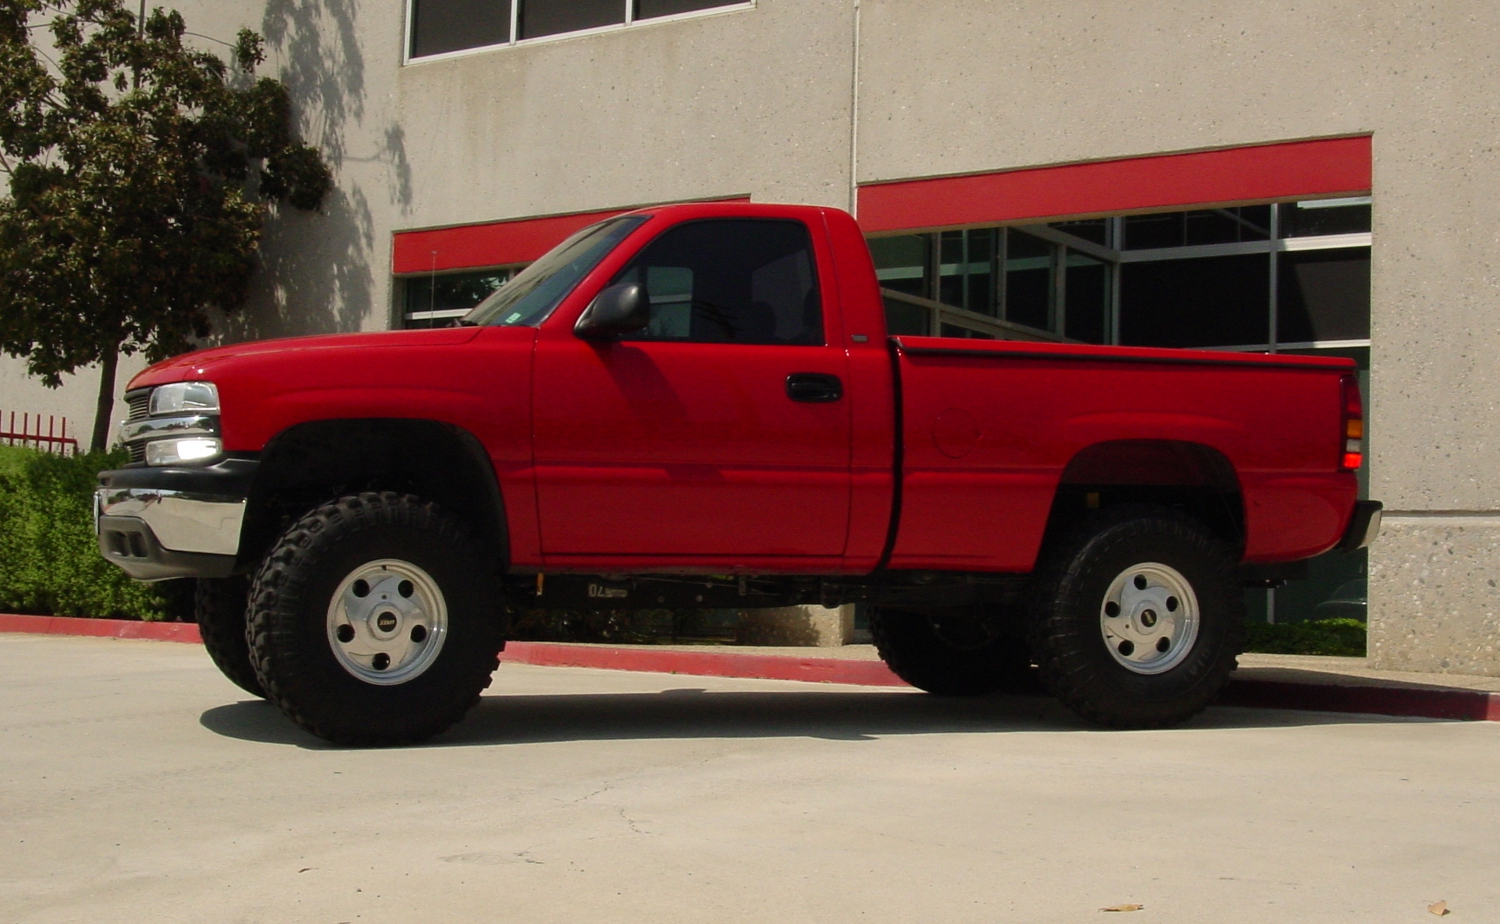 1999 2006 chevy silverado gmc sierra 1500 2wd models spindle lift kit by cst suspension 4 front lift